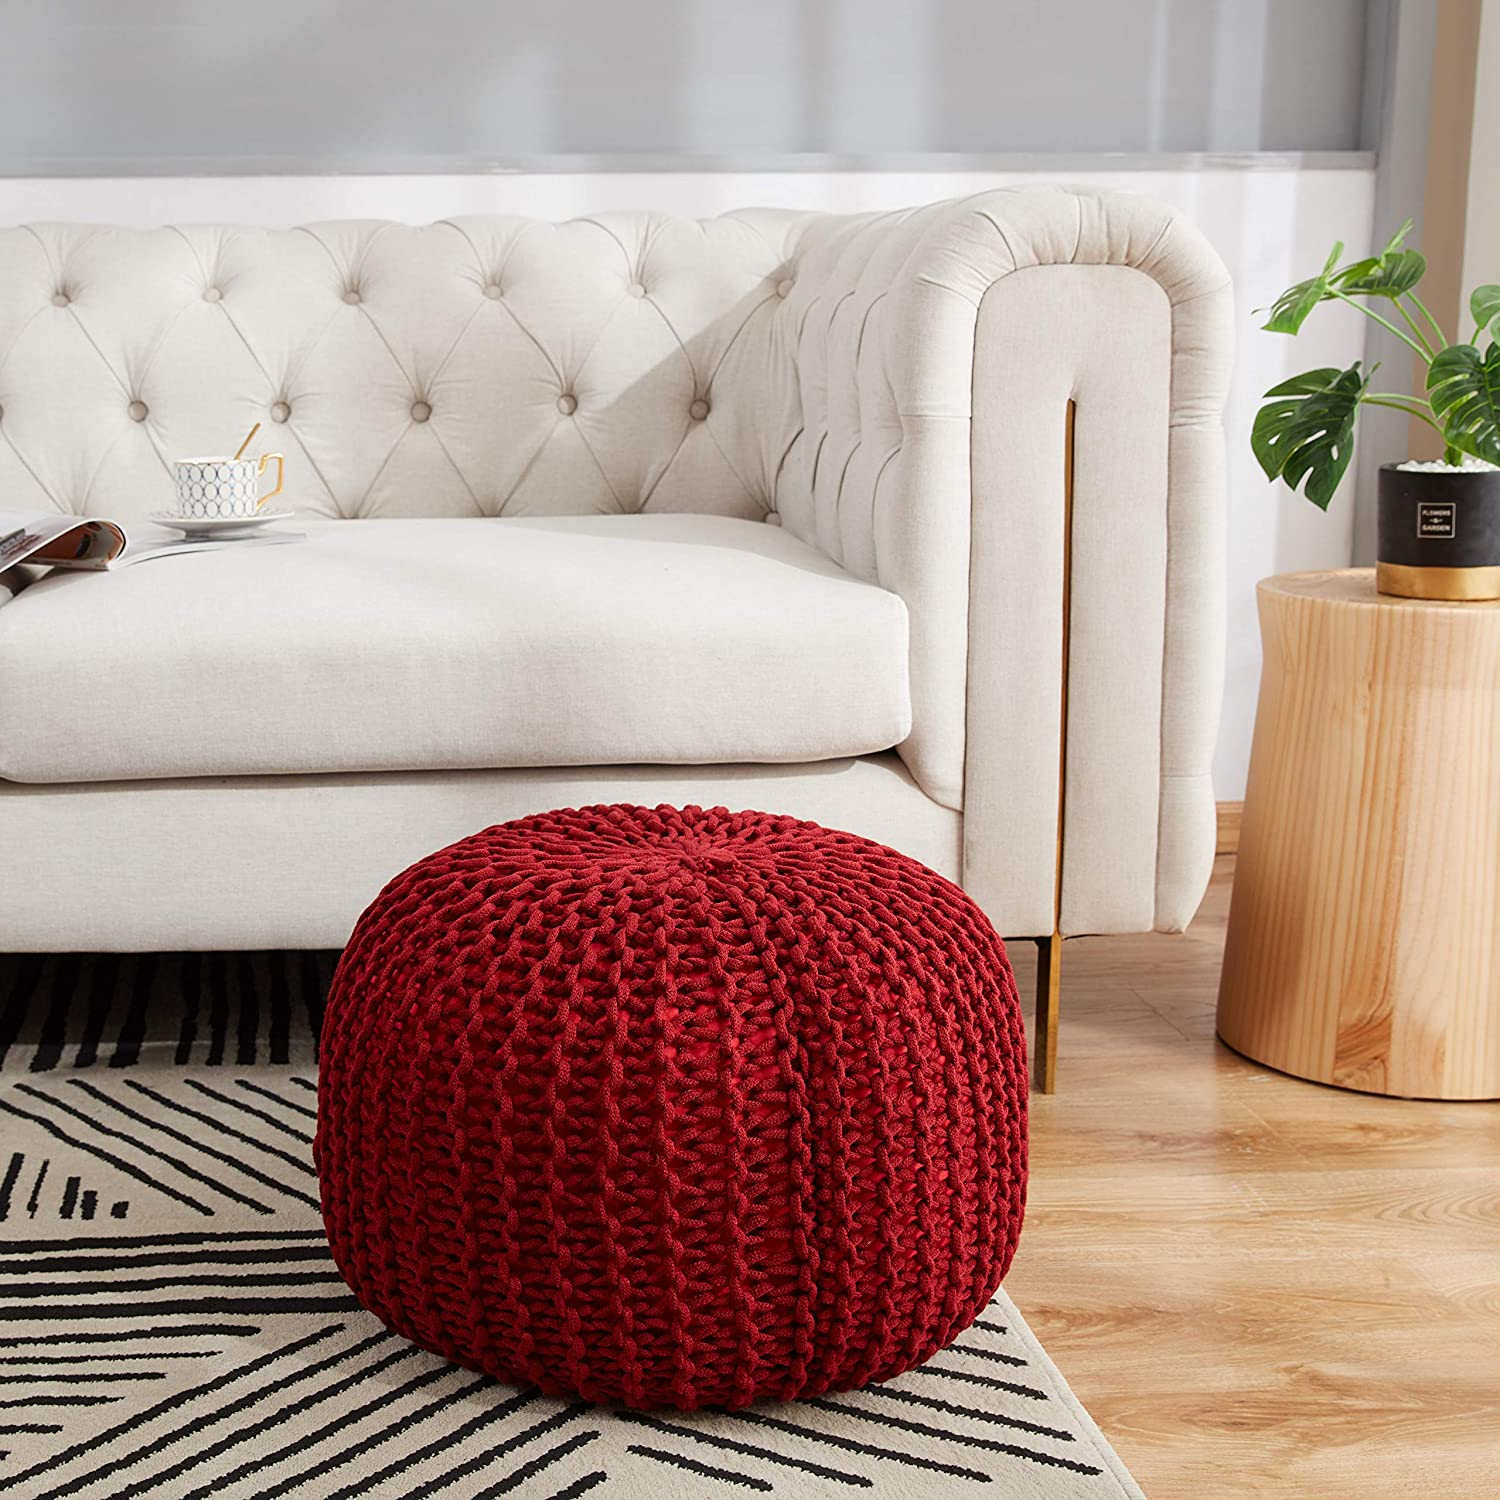 Amazon Com Cheer Collection 18 Round Pouf Ottoman Chunky Hand Knit Decorative And Comfortable Foot Rest Burgundy Furniture Decor